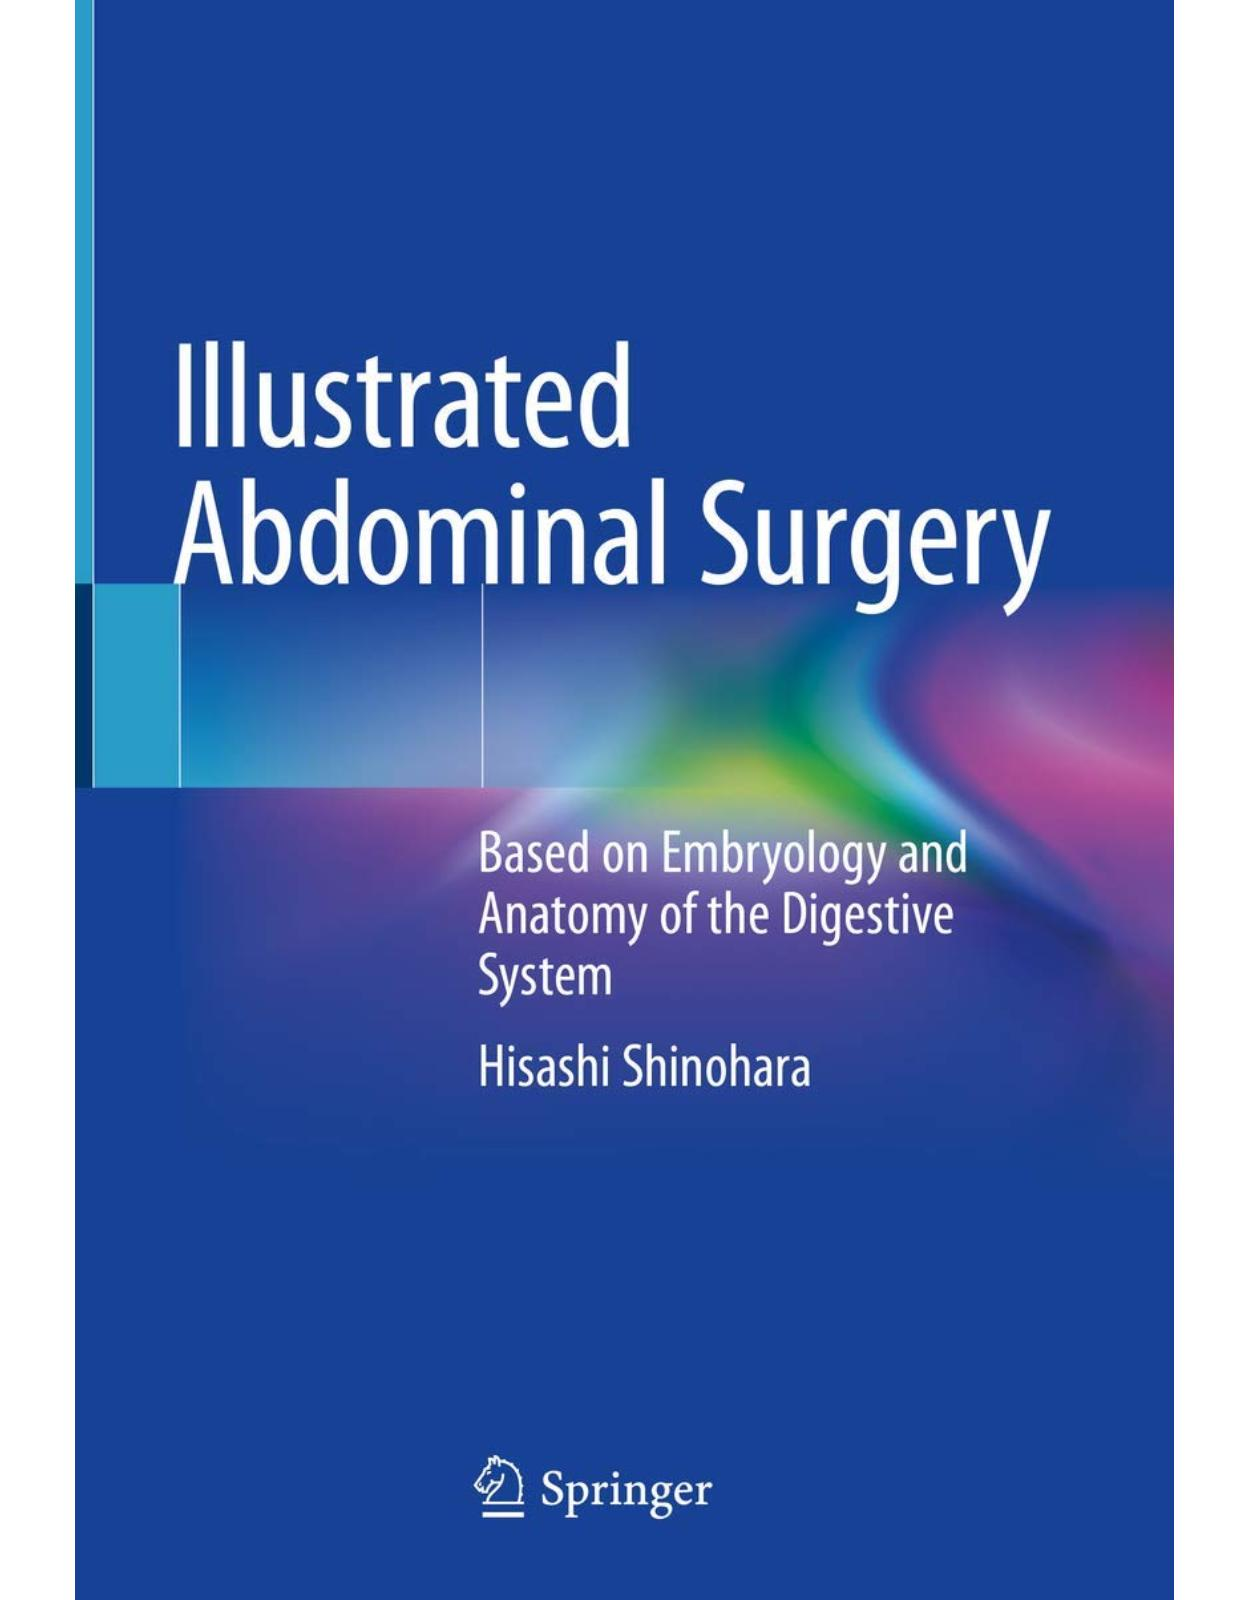 Illustrated Abdominal Surgery: Based on Embryology and Anatomy of the Digestive System